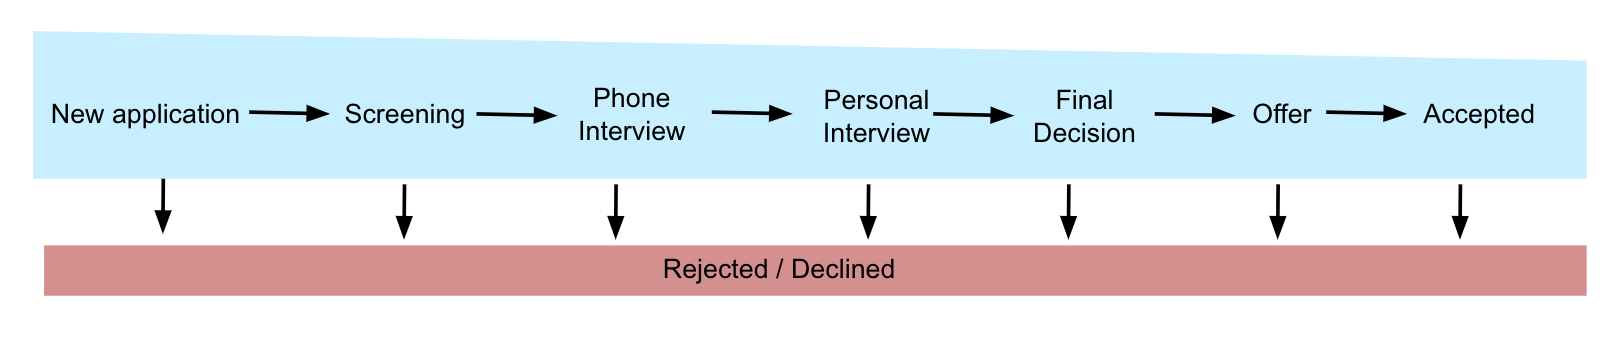 recruiting-phases-process_en-us.png